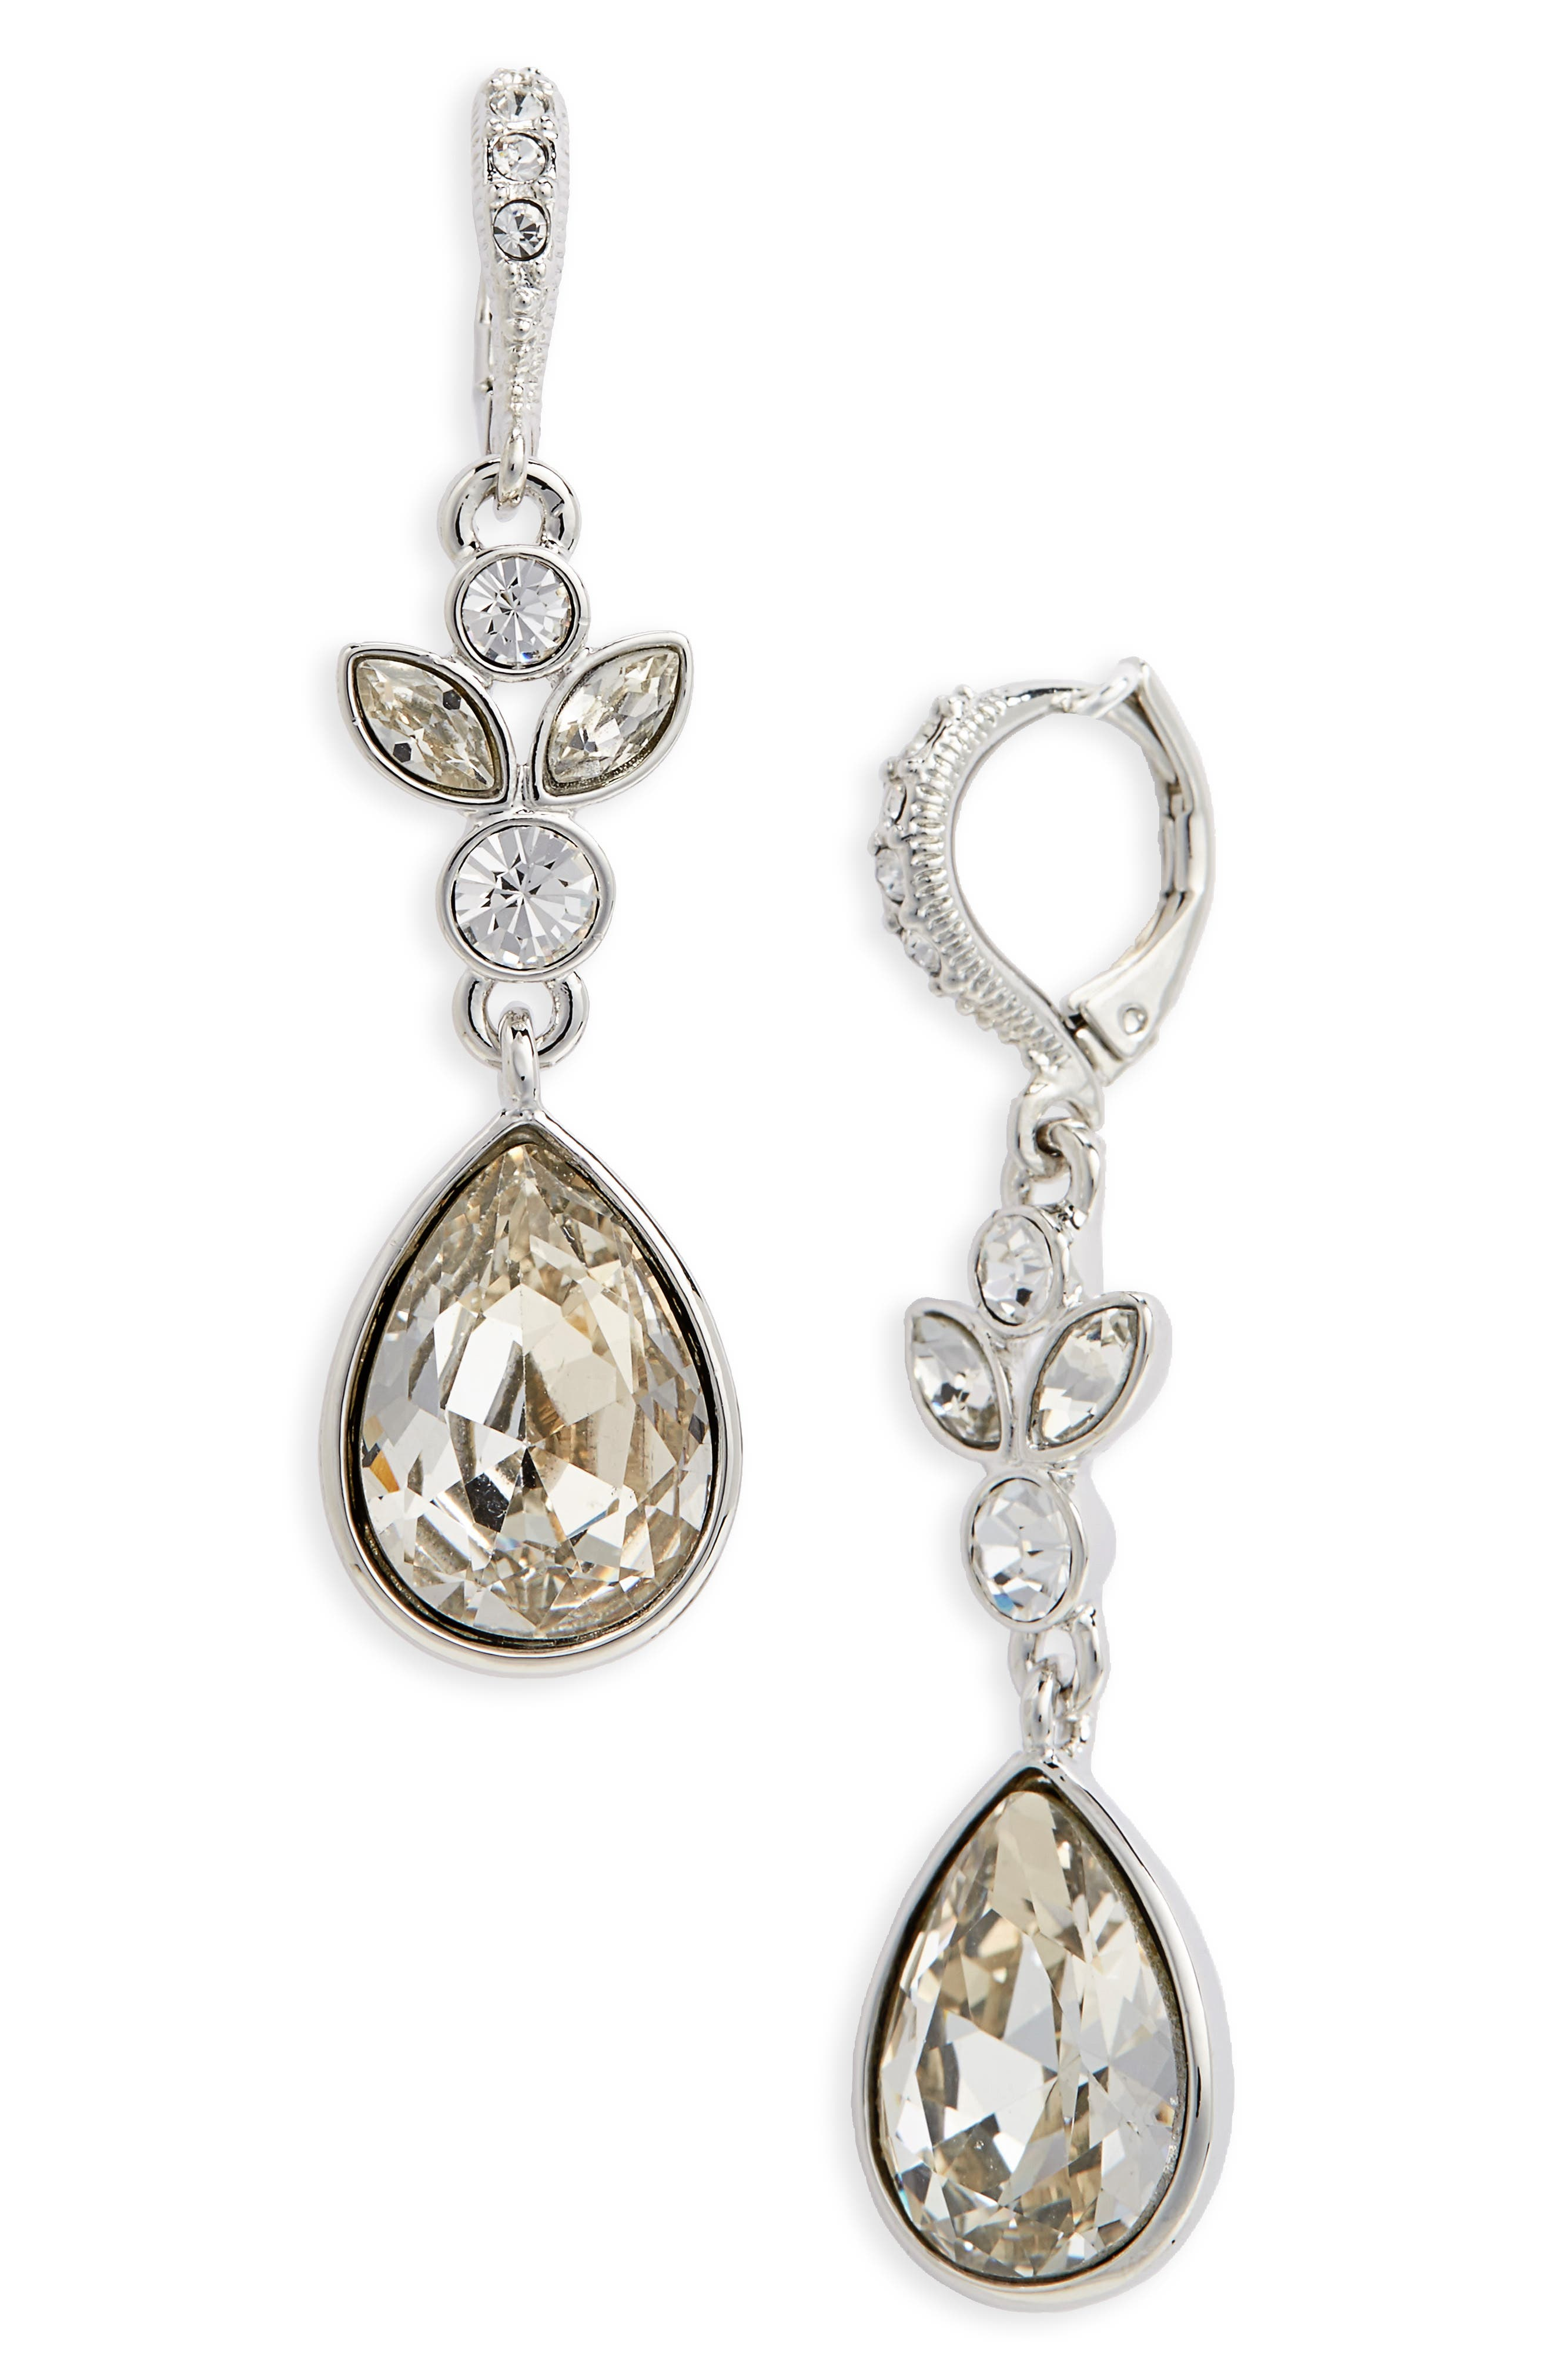 Givenchy Sydney Teardrop Earrings